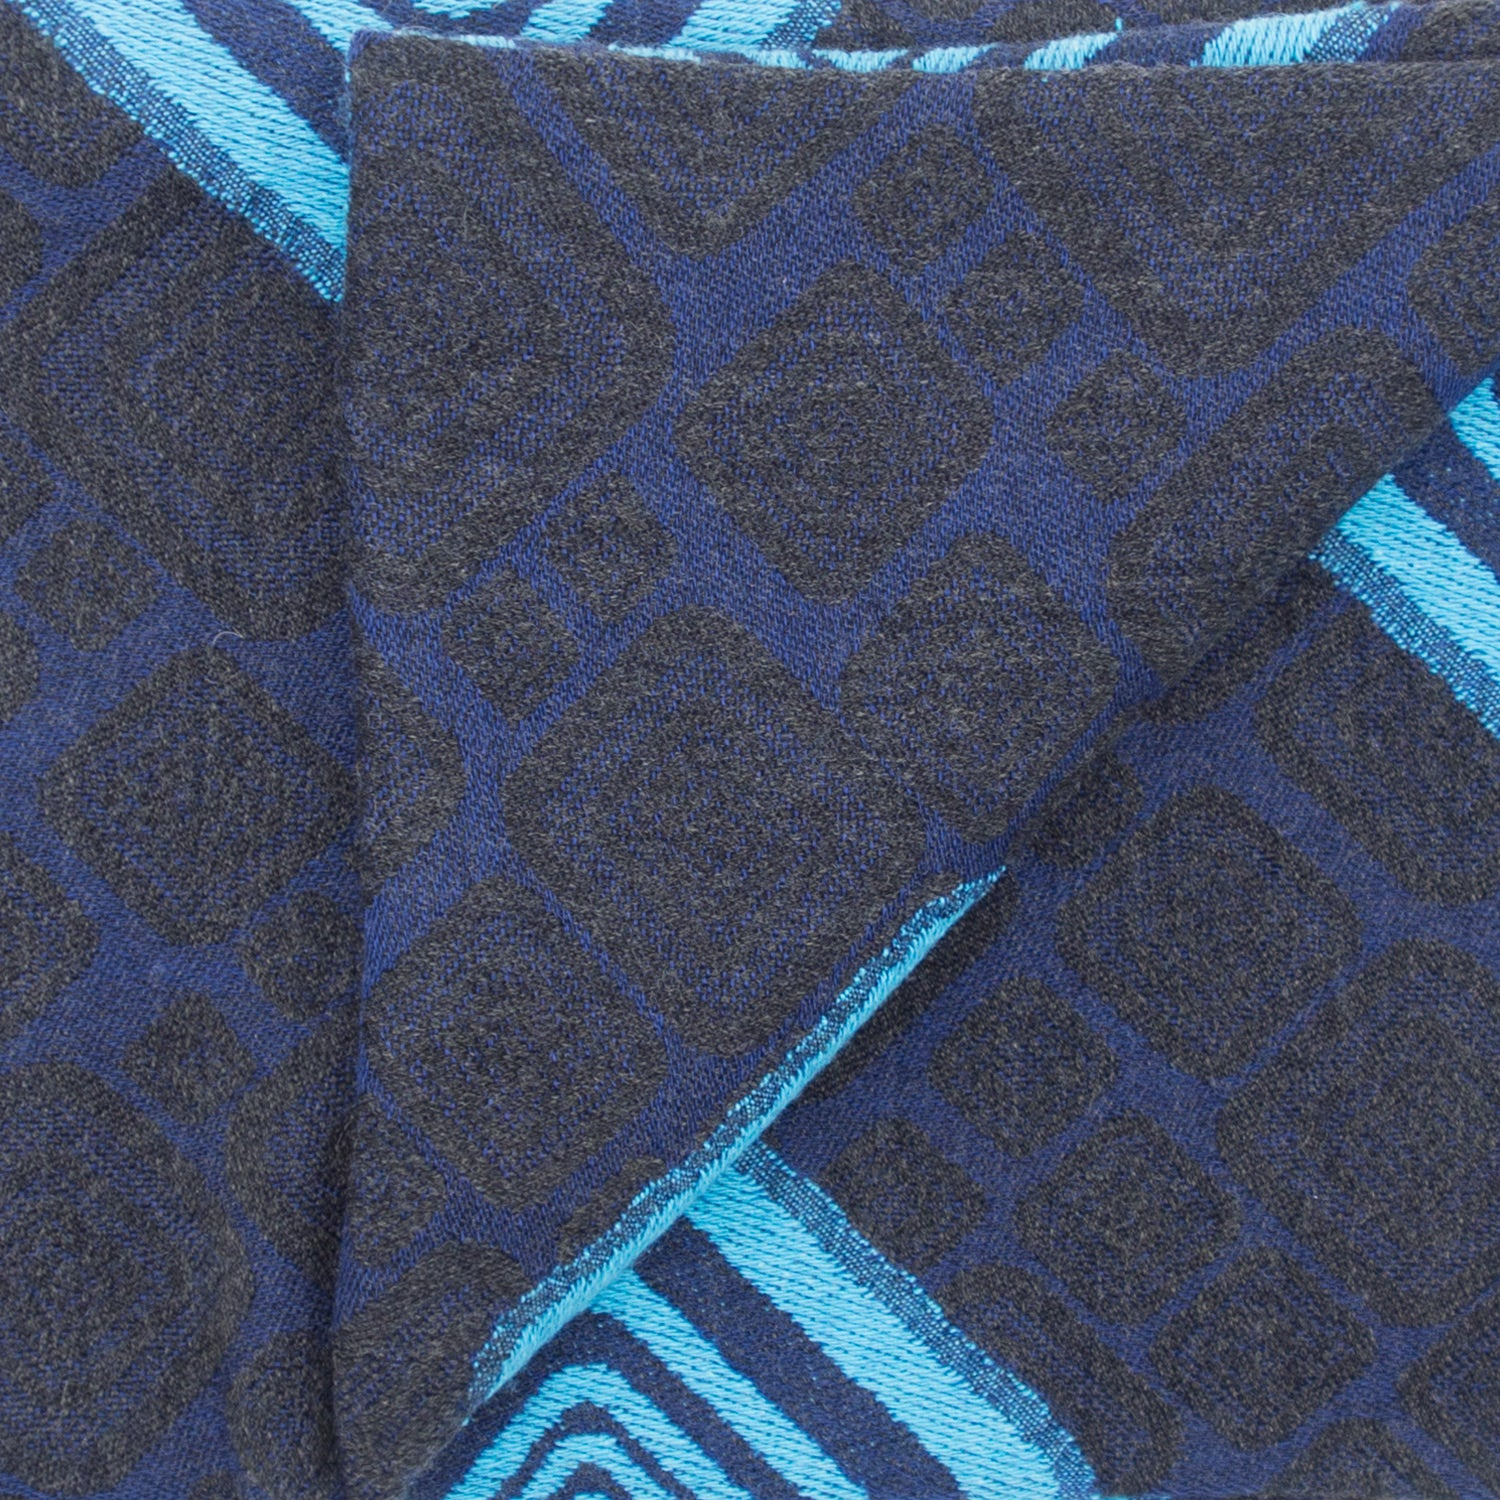 Doria & Dojola's Rhomboid Pattern Wool-Cotton Scarf.80% Wool 20% Cotton 63 cm x 170 cm. 100% Made in Italy.